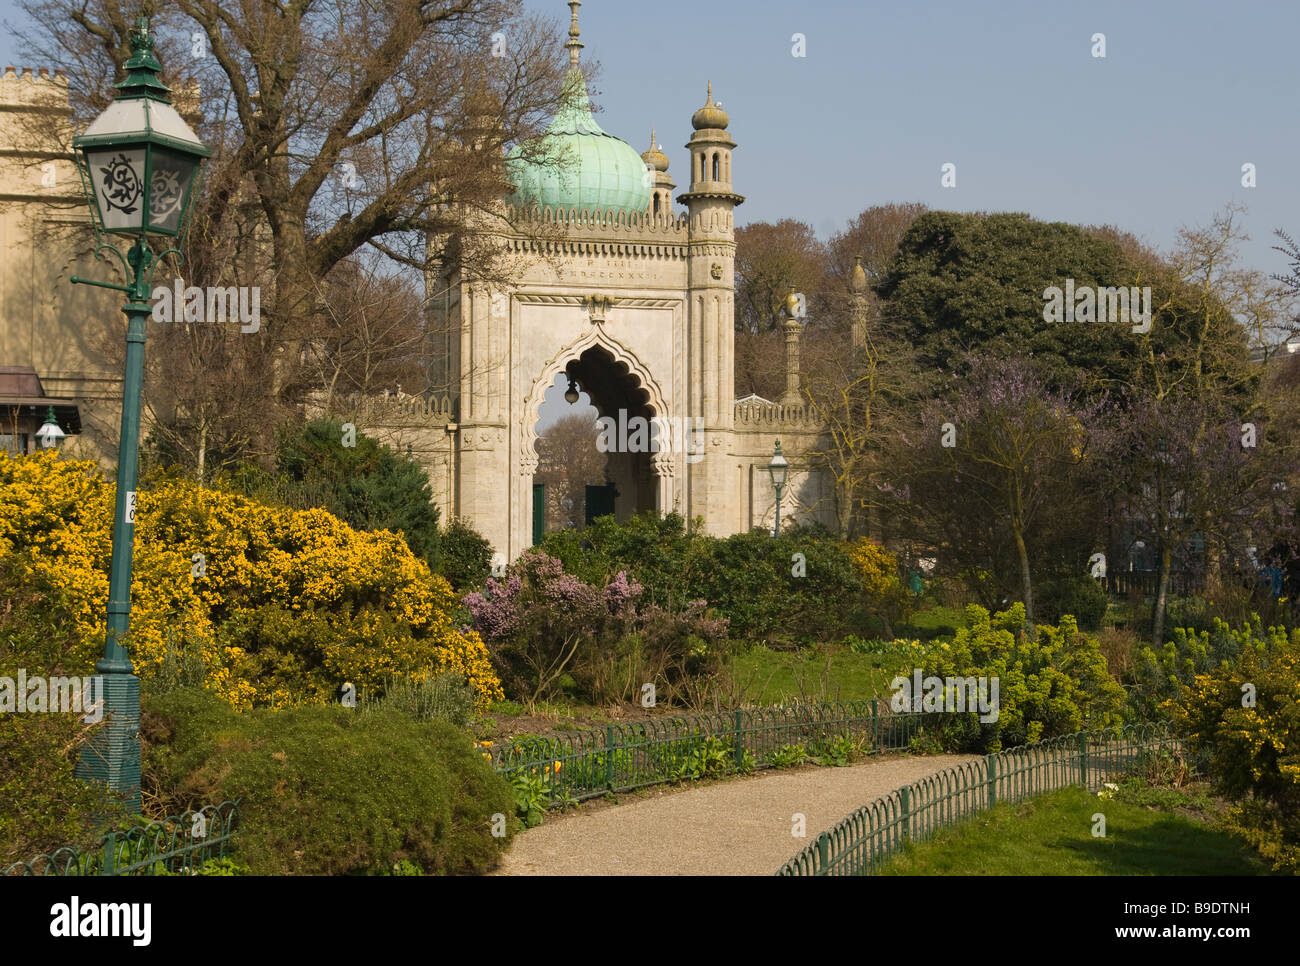 Entrance Gate To The Royal Pavilion Gardens Brighton East Sussex England - Stock Image